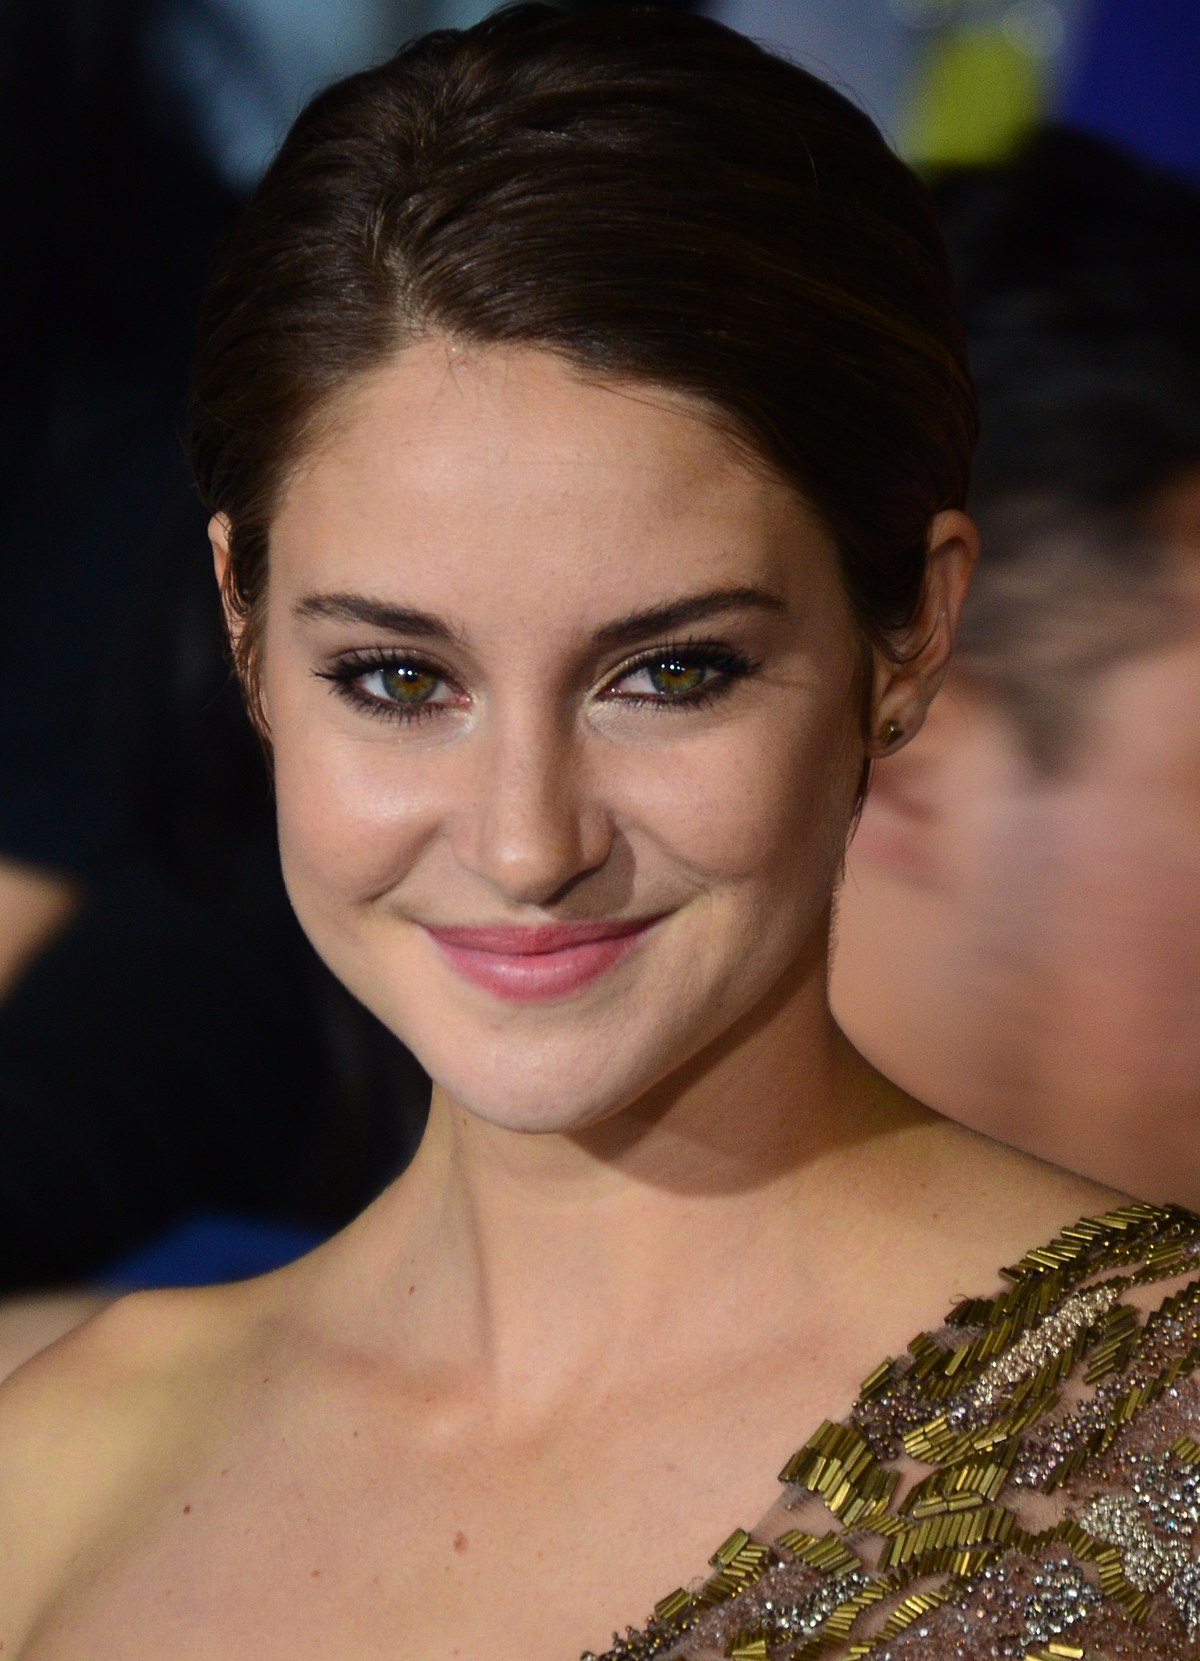 Shailene Woodleys